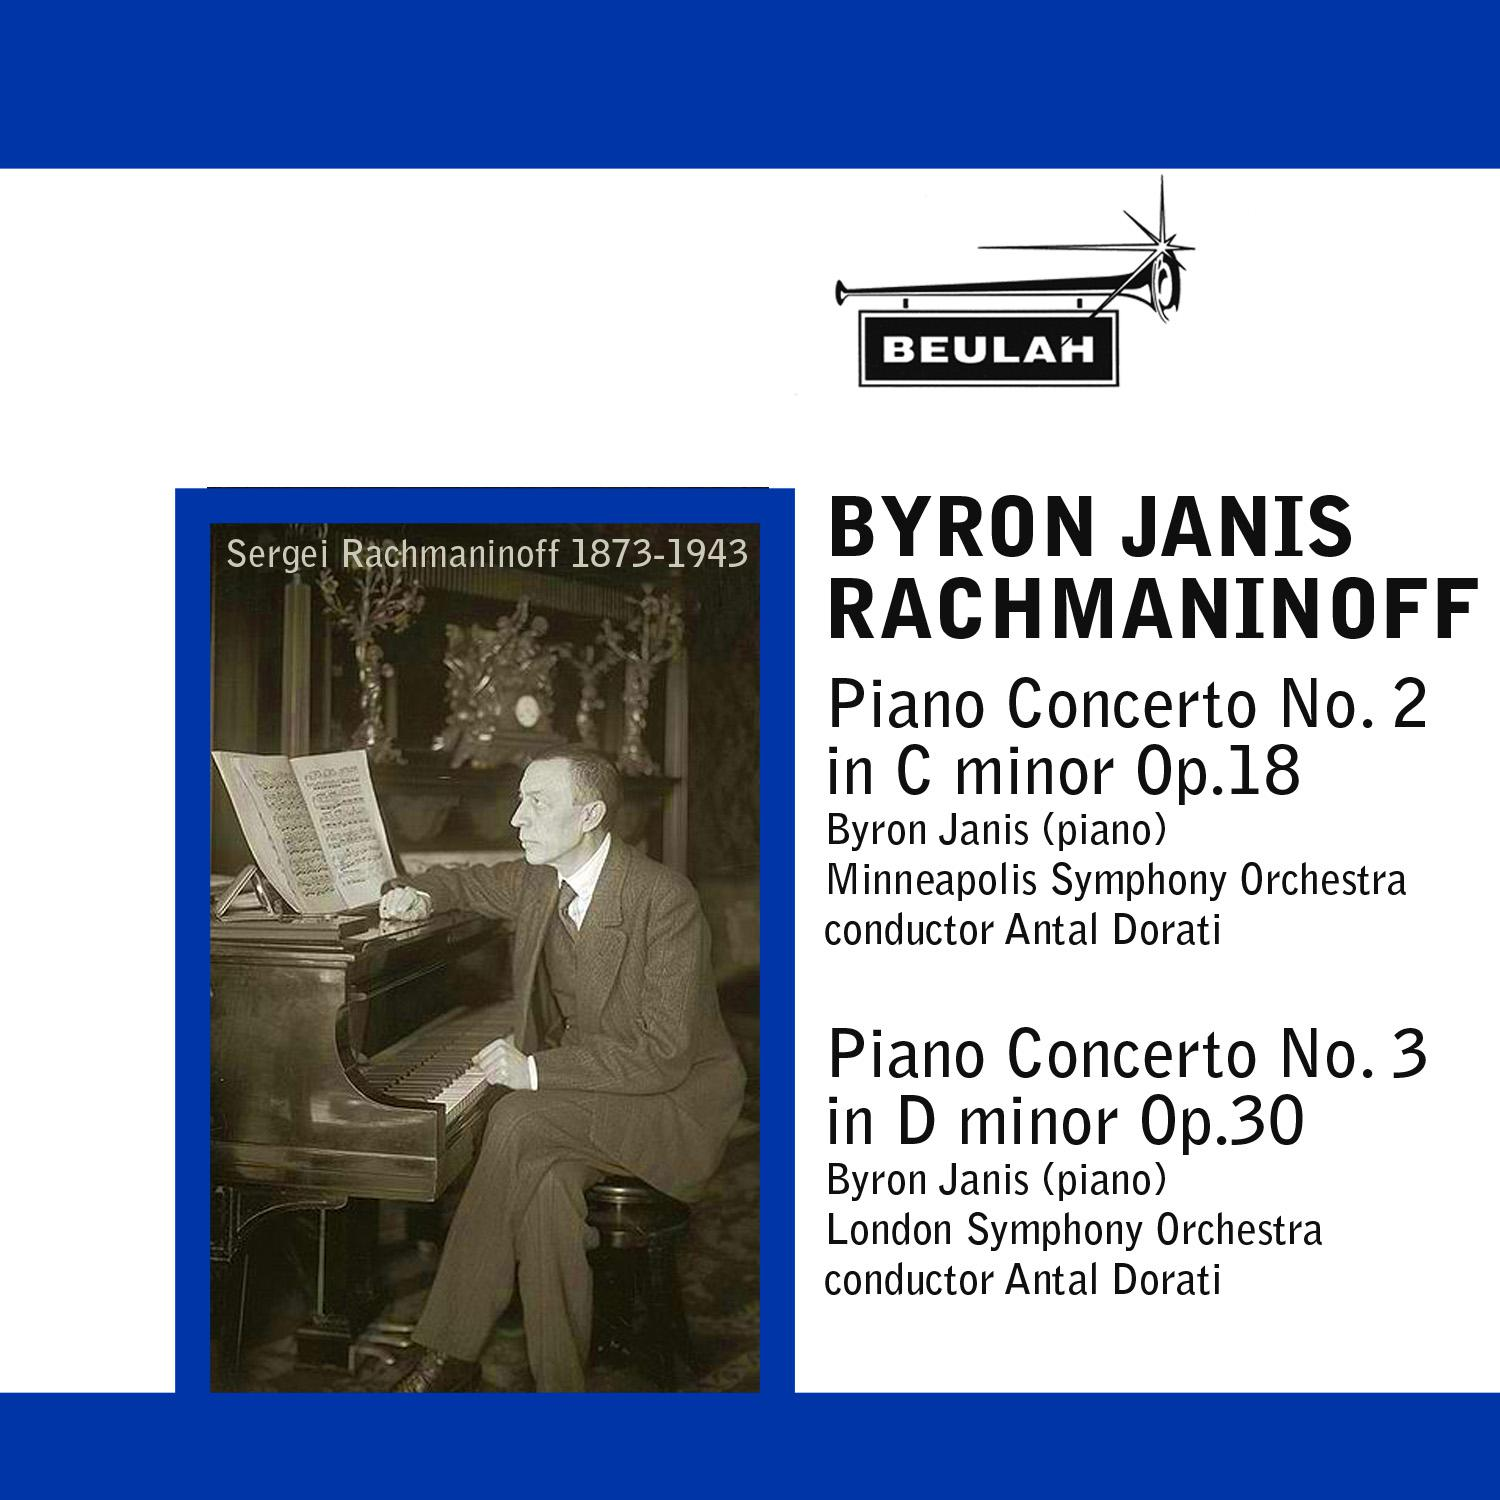 byron janis plays rachmaninoff piano concertos numbers 2 and 3